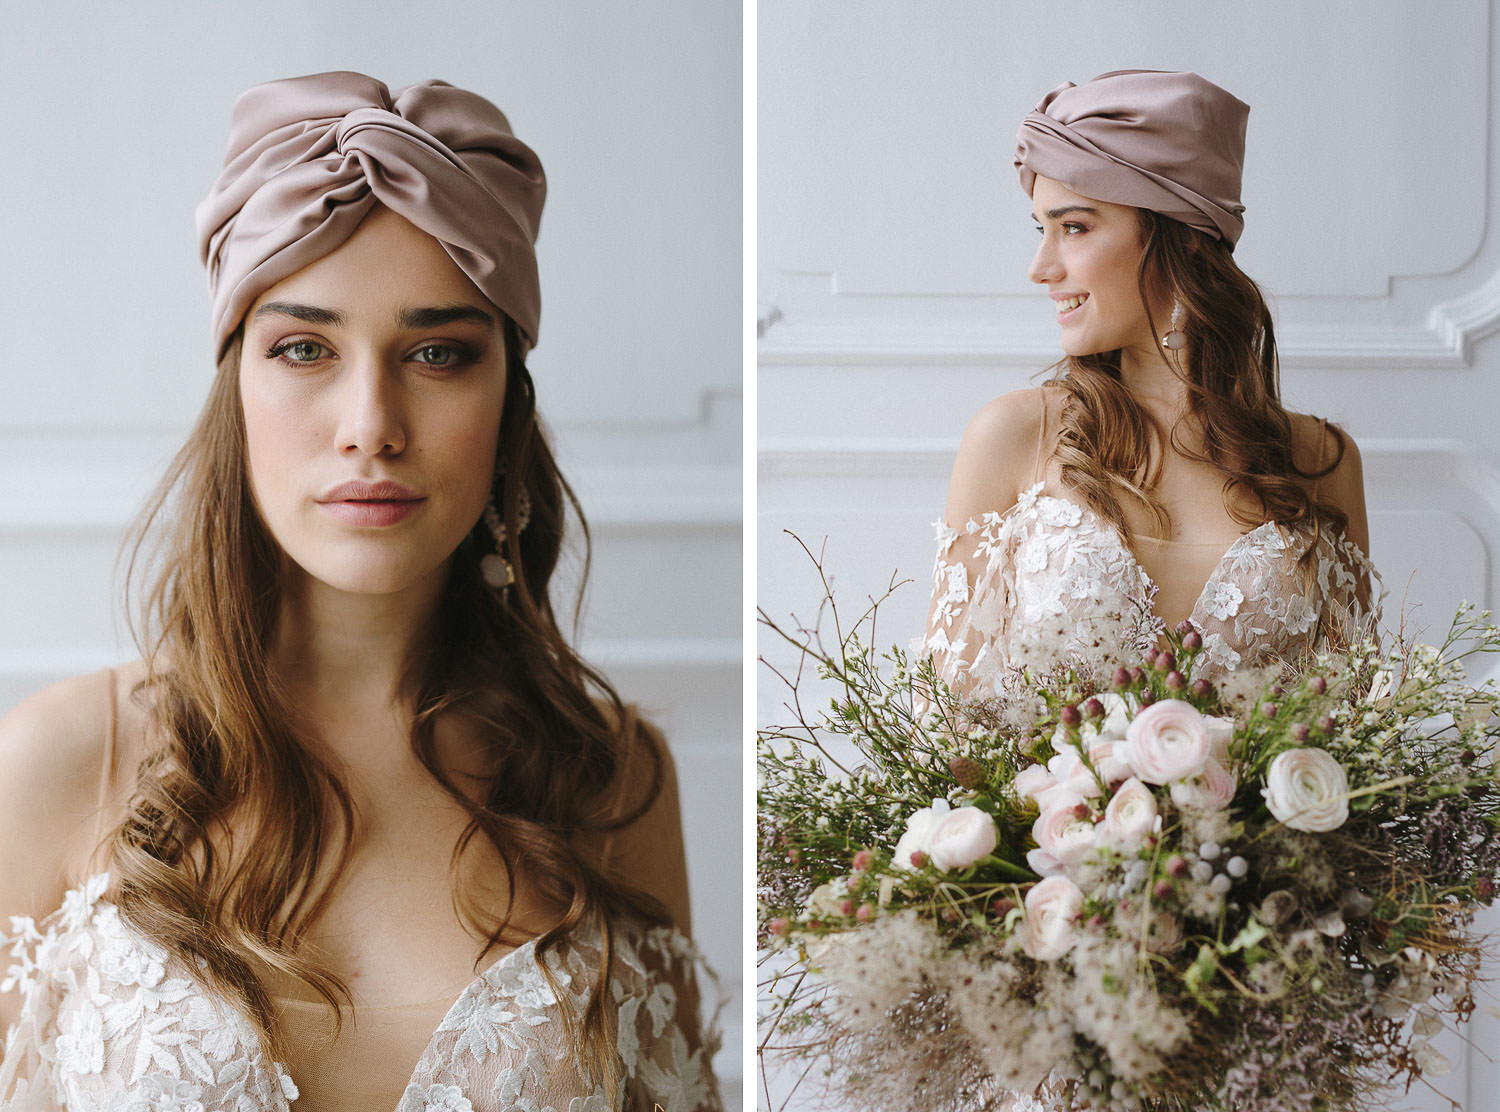 Stylish and modern bride with Bridal Turban at Villa Bianca Stucchi, Cernobbio - Lake Como wedding photographer Camilla Anchisi